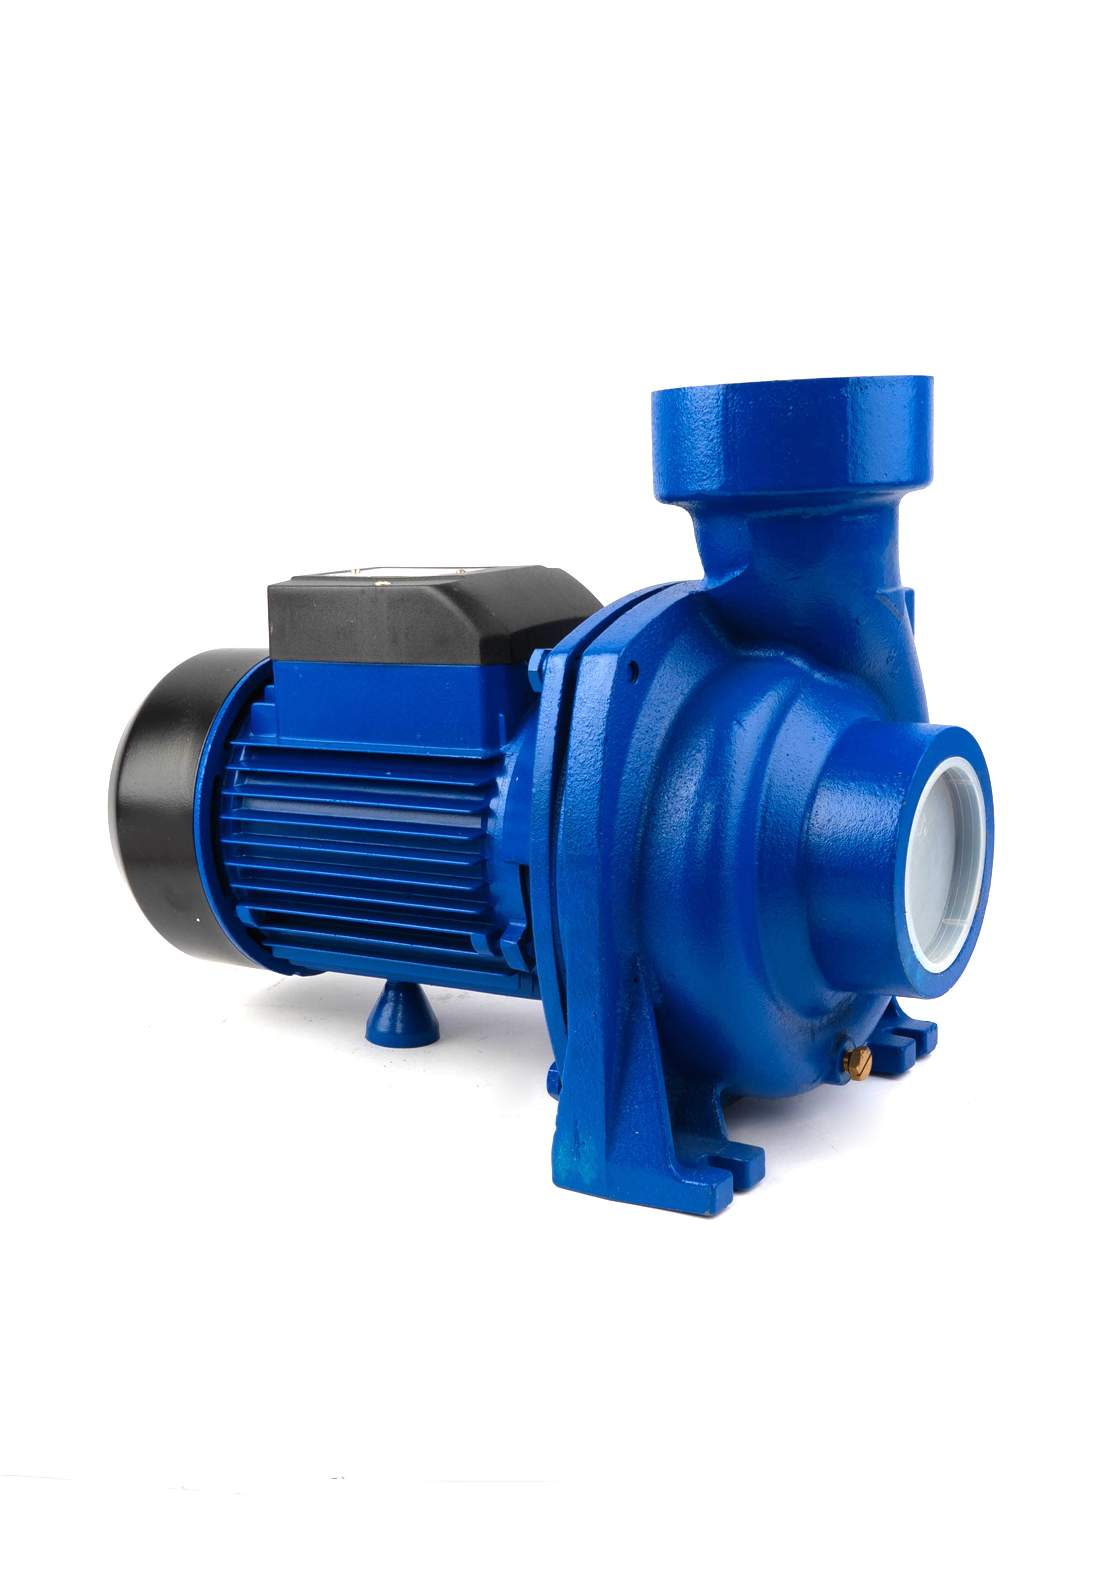 """DecoVolt 4932 Water pump 1.5 horse outlet hook 2 """"ang  ماطور ماء 1.5 حصان حنزيرة مخرج2"""" انج"""